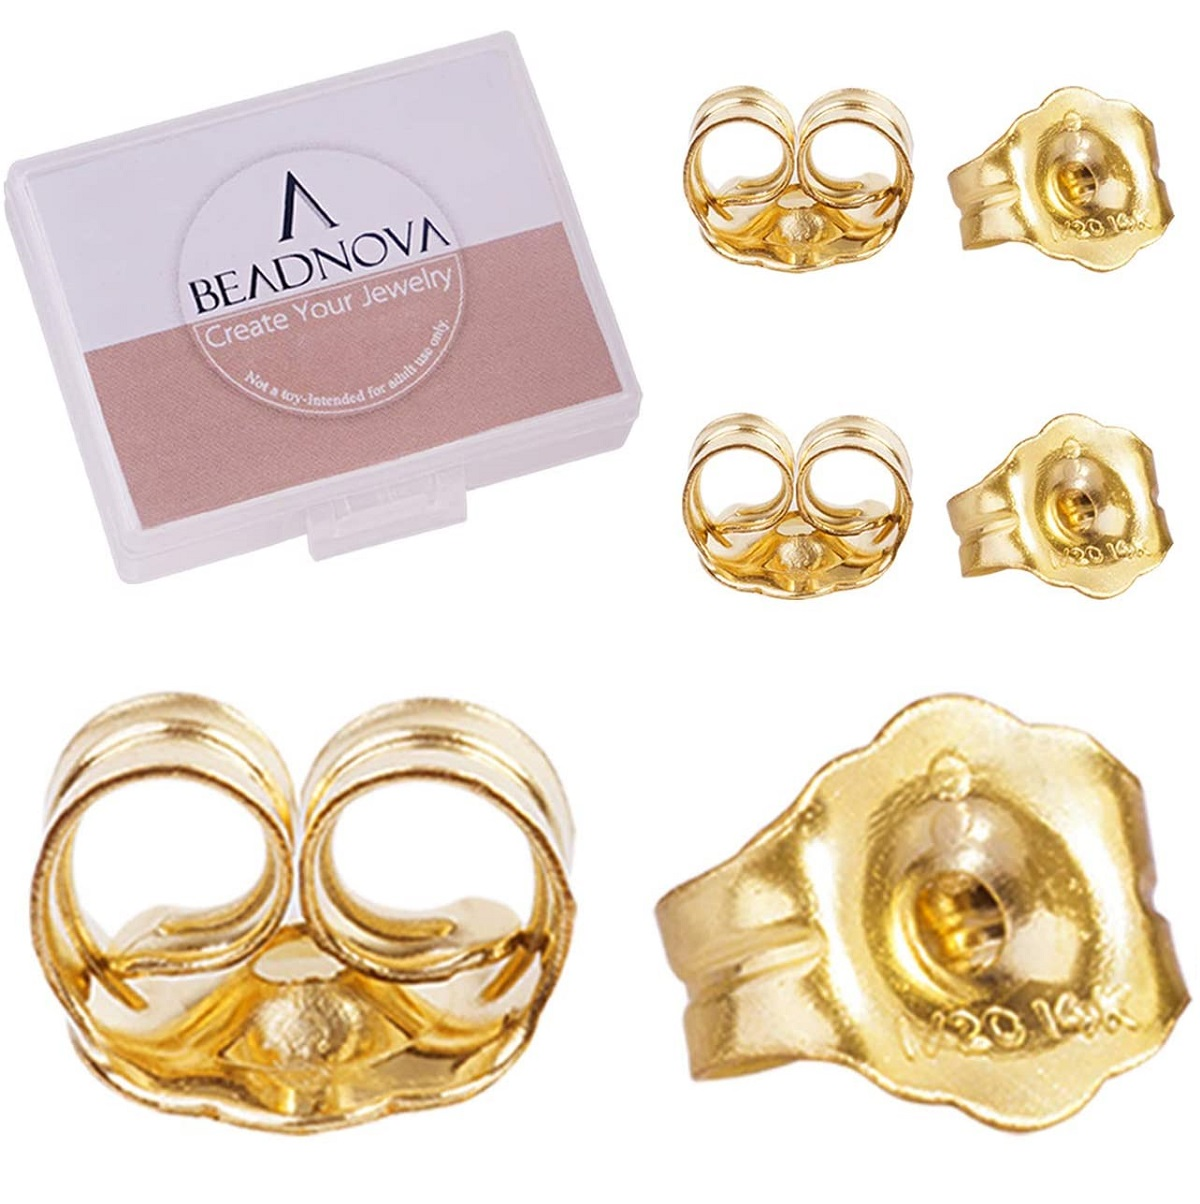 BEADNOVA 14k Gold Earring Backs -1